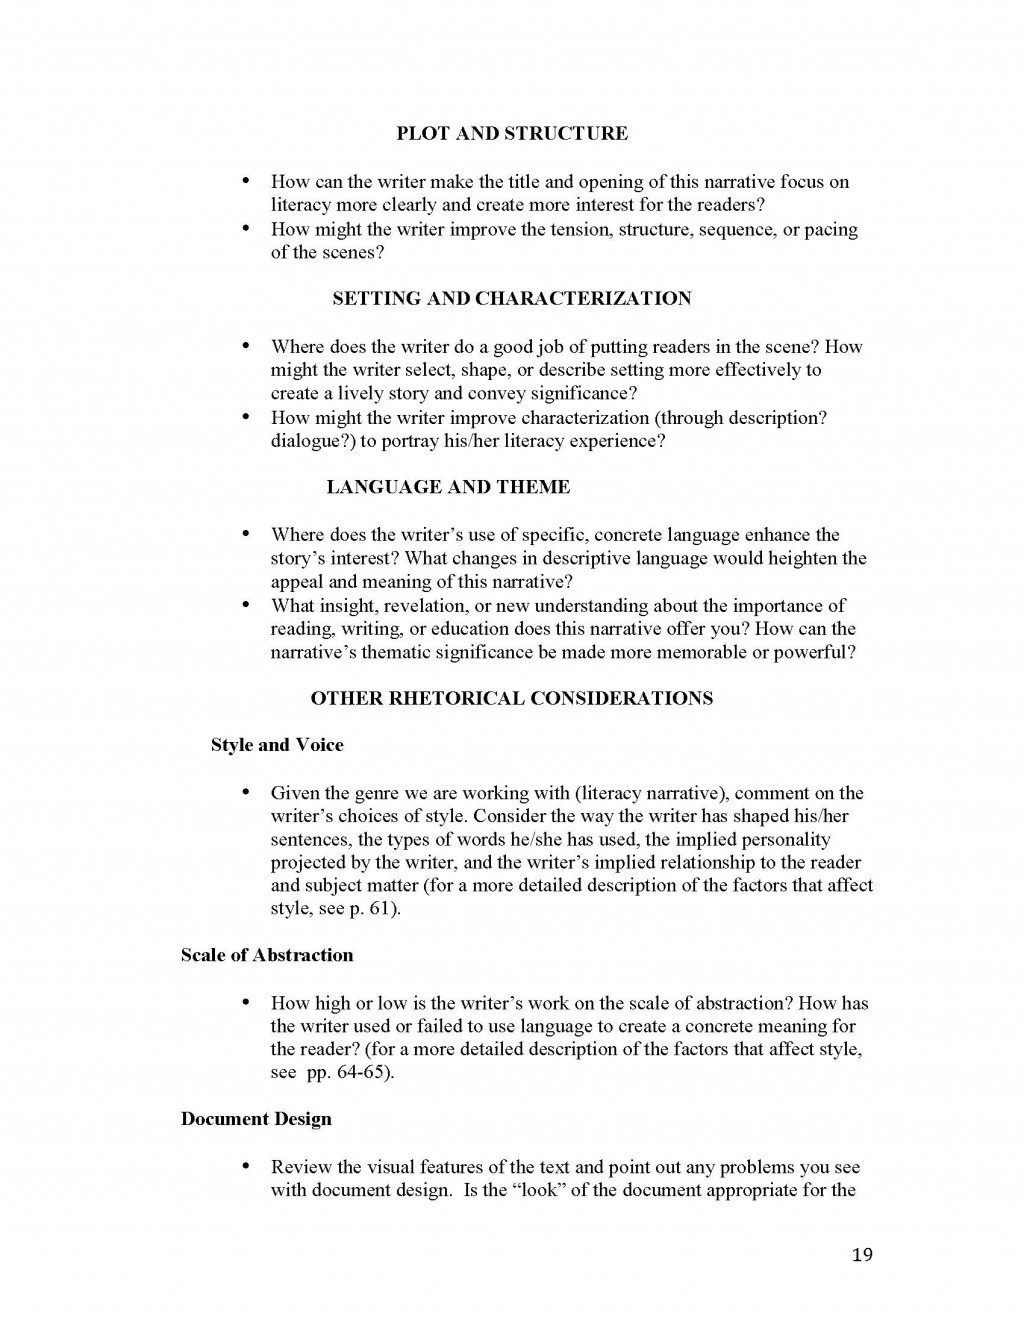 013 Immigration Essays Samples Unit 1 Literacy Narrative Instructor Copy Page 19 Essay Rare Large